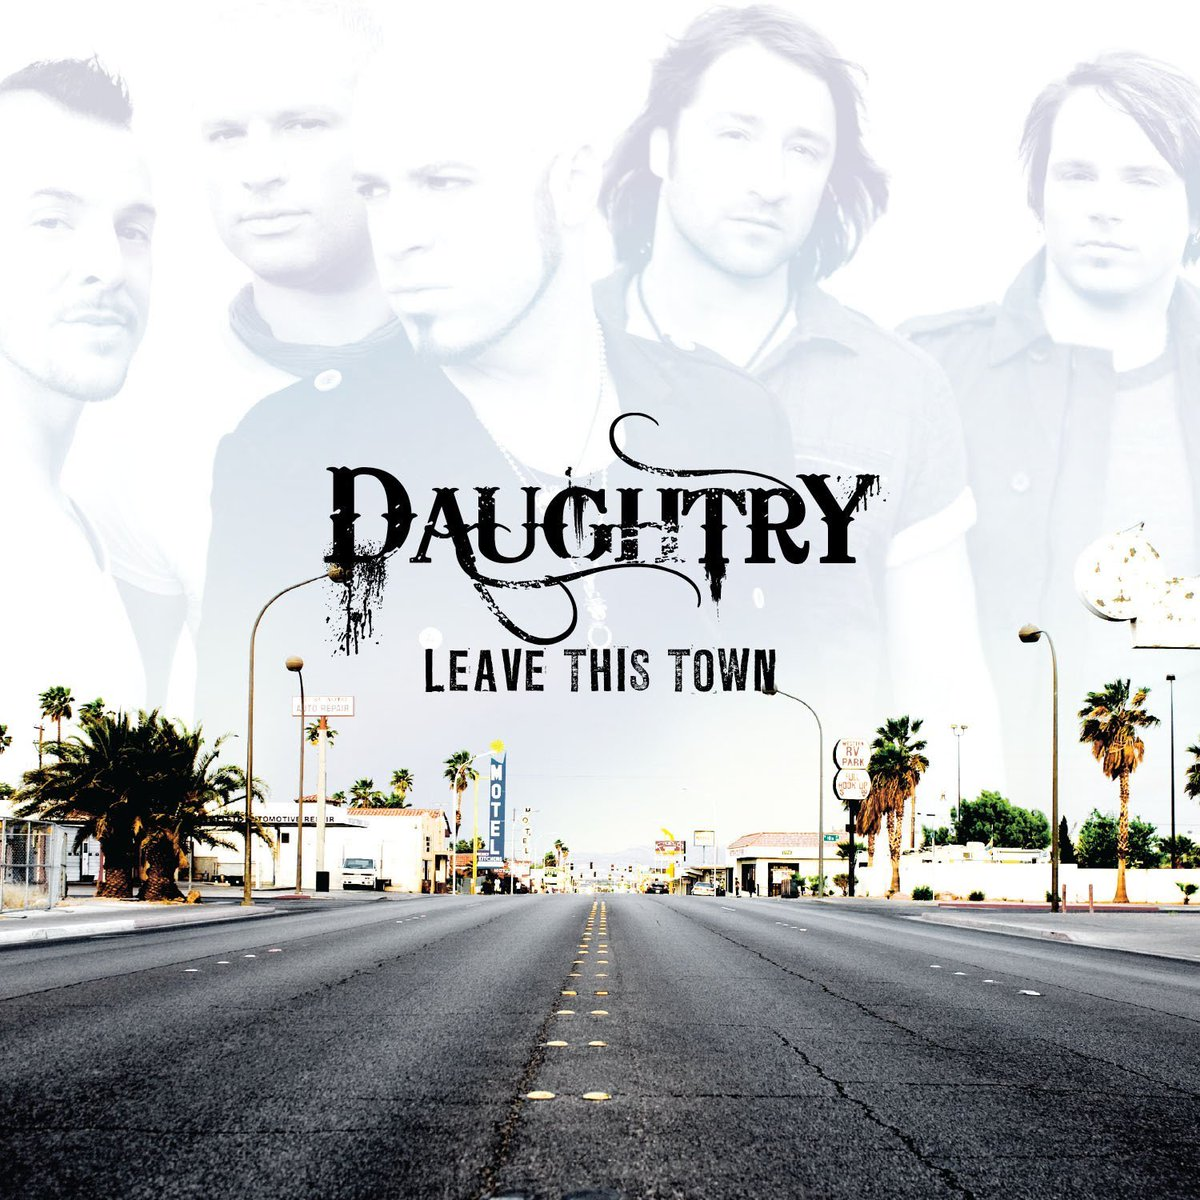 Our second album is 10 years old today!  WOW. What's your favorite track? #LeaveThisTown<br>http://pic.twitter.com/HiBu6ZuIRt